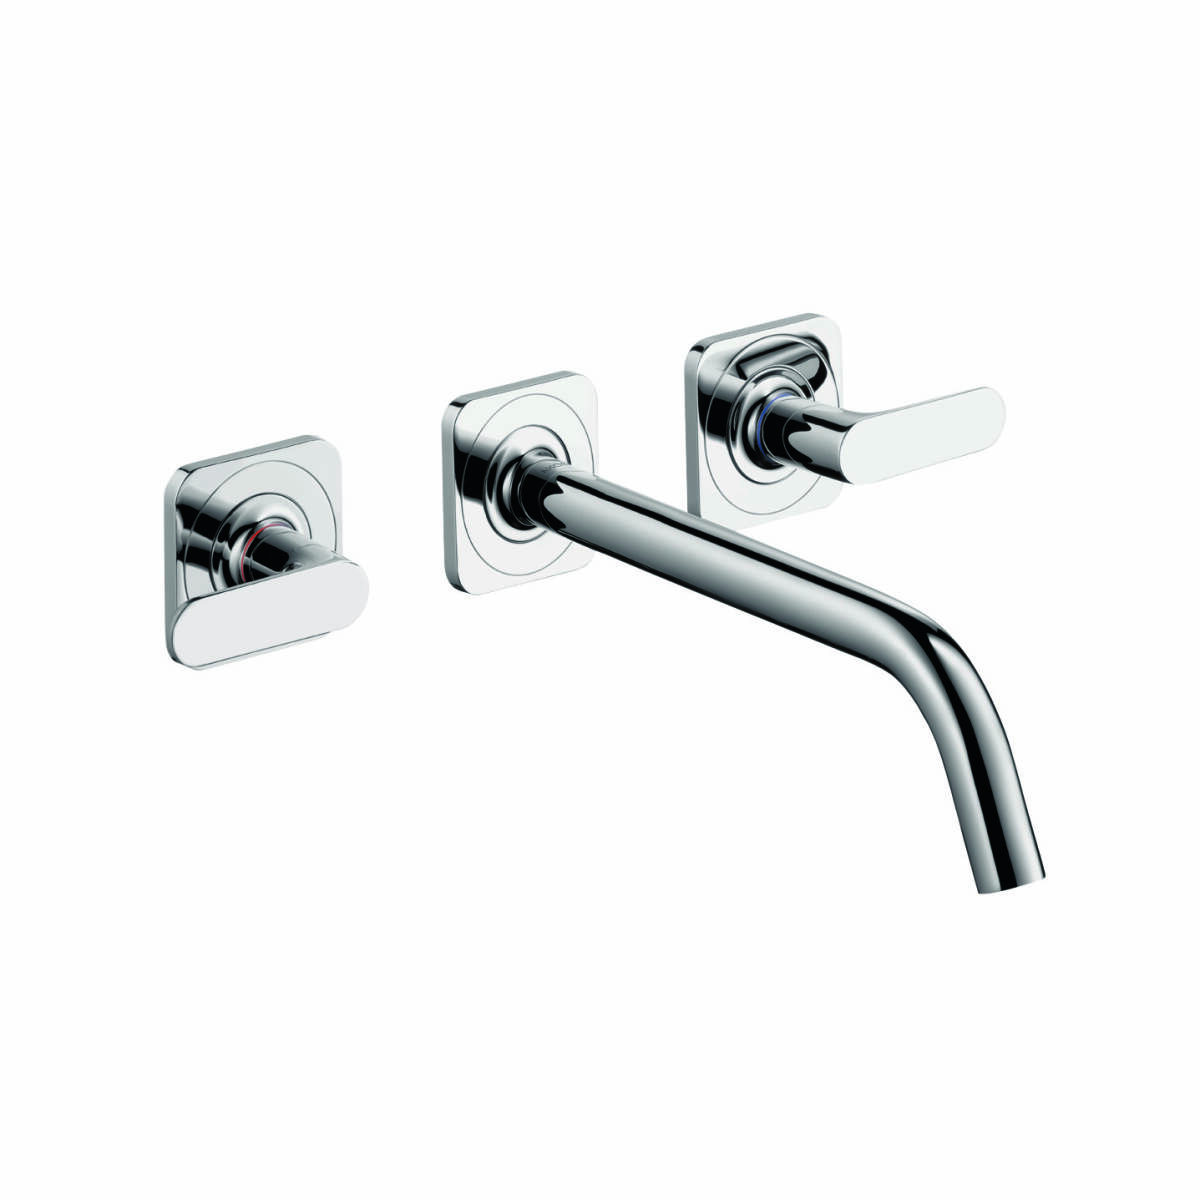 3-hole basin mixer for concealed installation wall-mounted with spout 226 mm, lever handles and escutcheons, Polished Gold Optic, 34315990